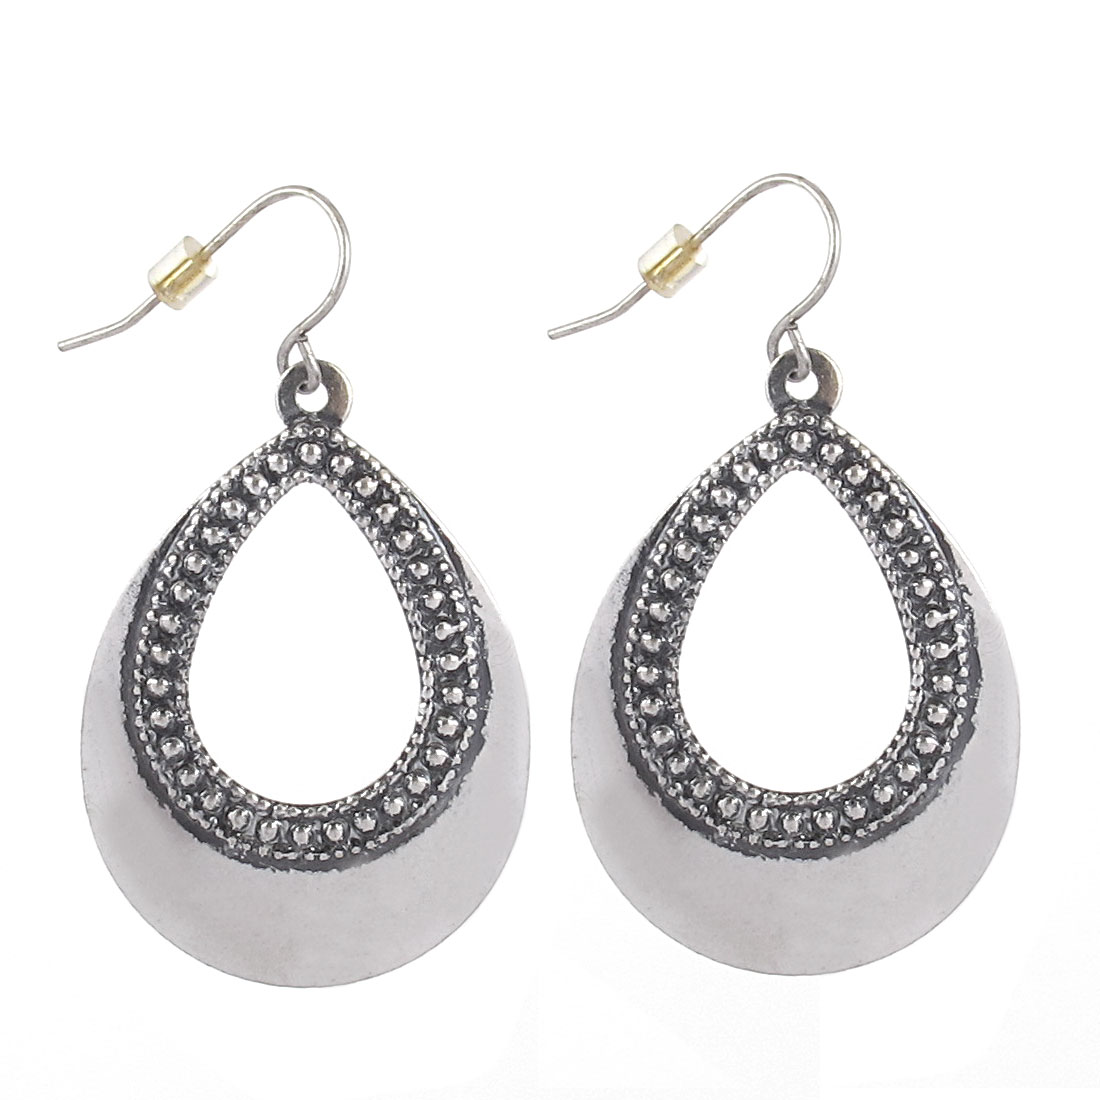 "Lady Women Metal Small Hollow Cobblestone Shape Dangling Pendant Hook Earrings Earbobs Silver Tone 1.8"" Length Pair"